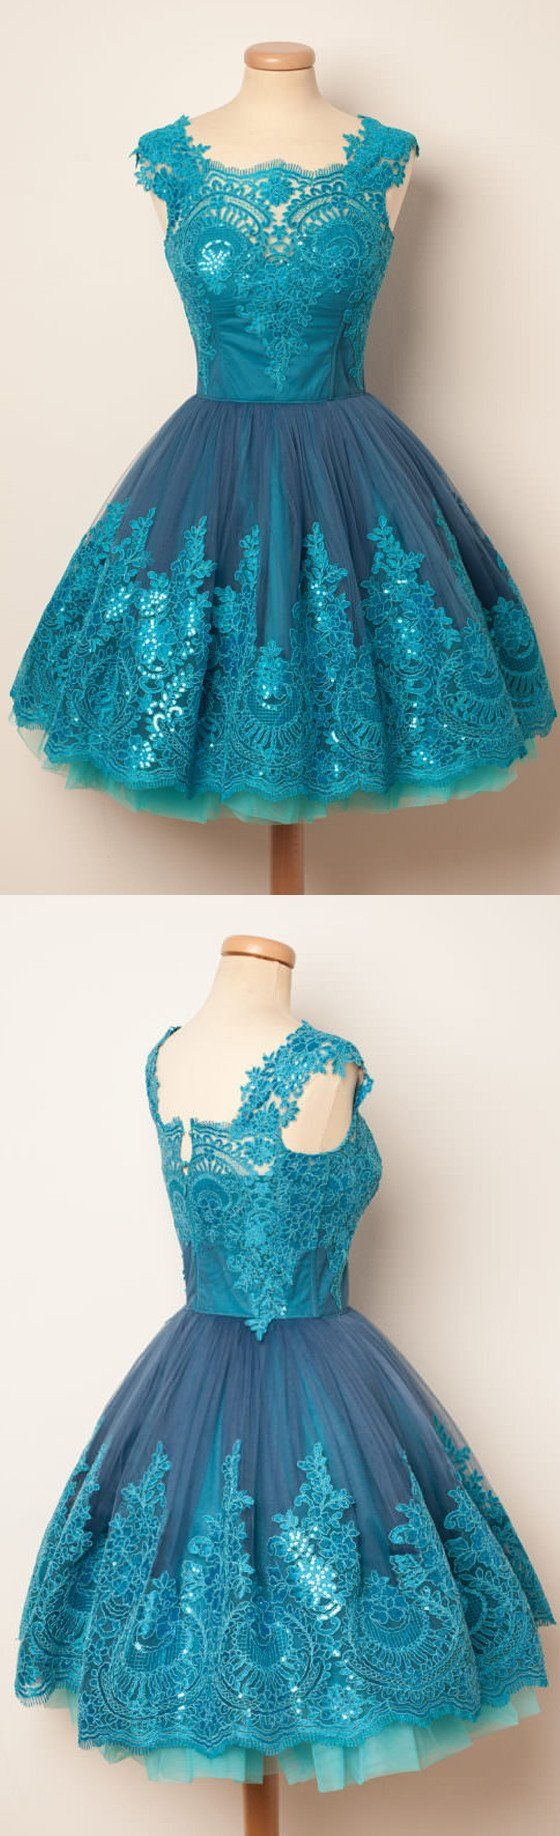 Blue Unique Applique Lovely Affordable Short Homecoming Dresses,B0333